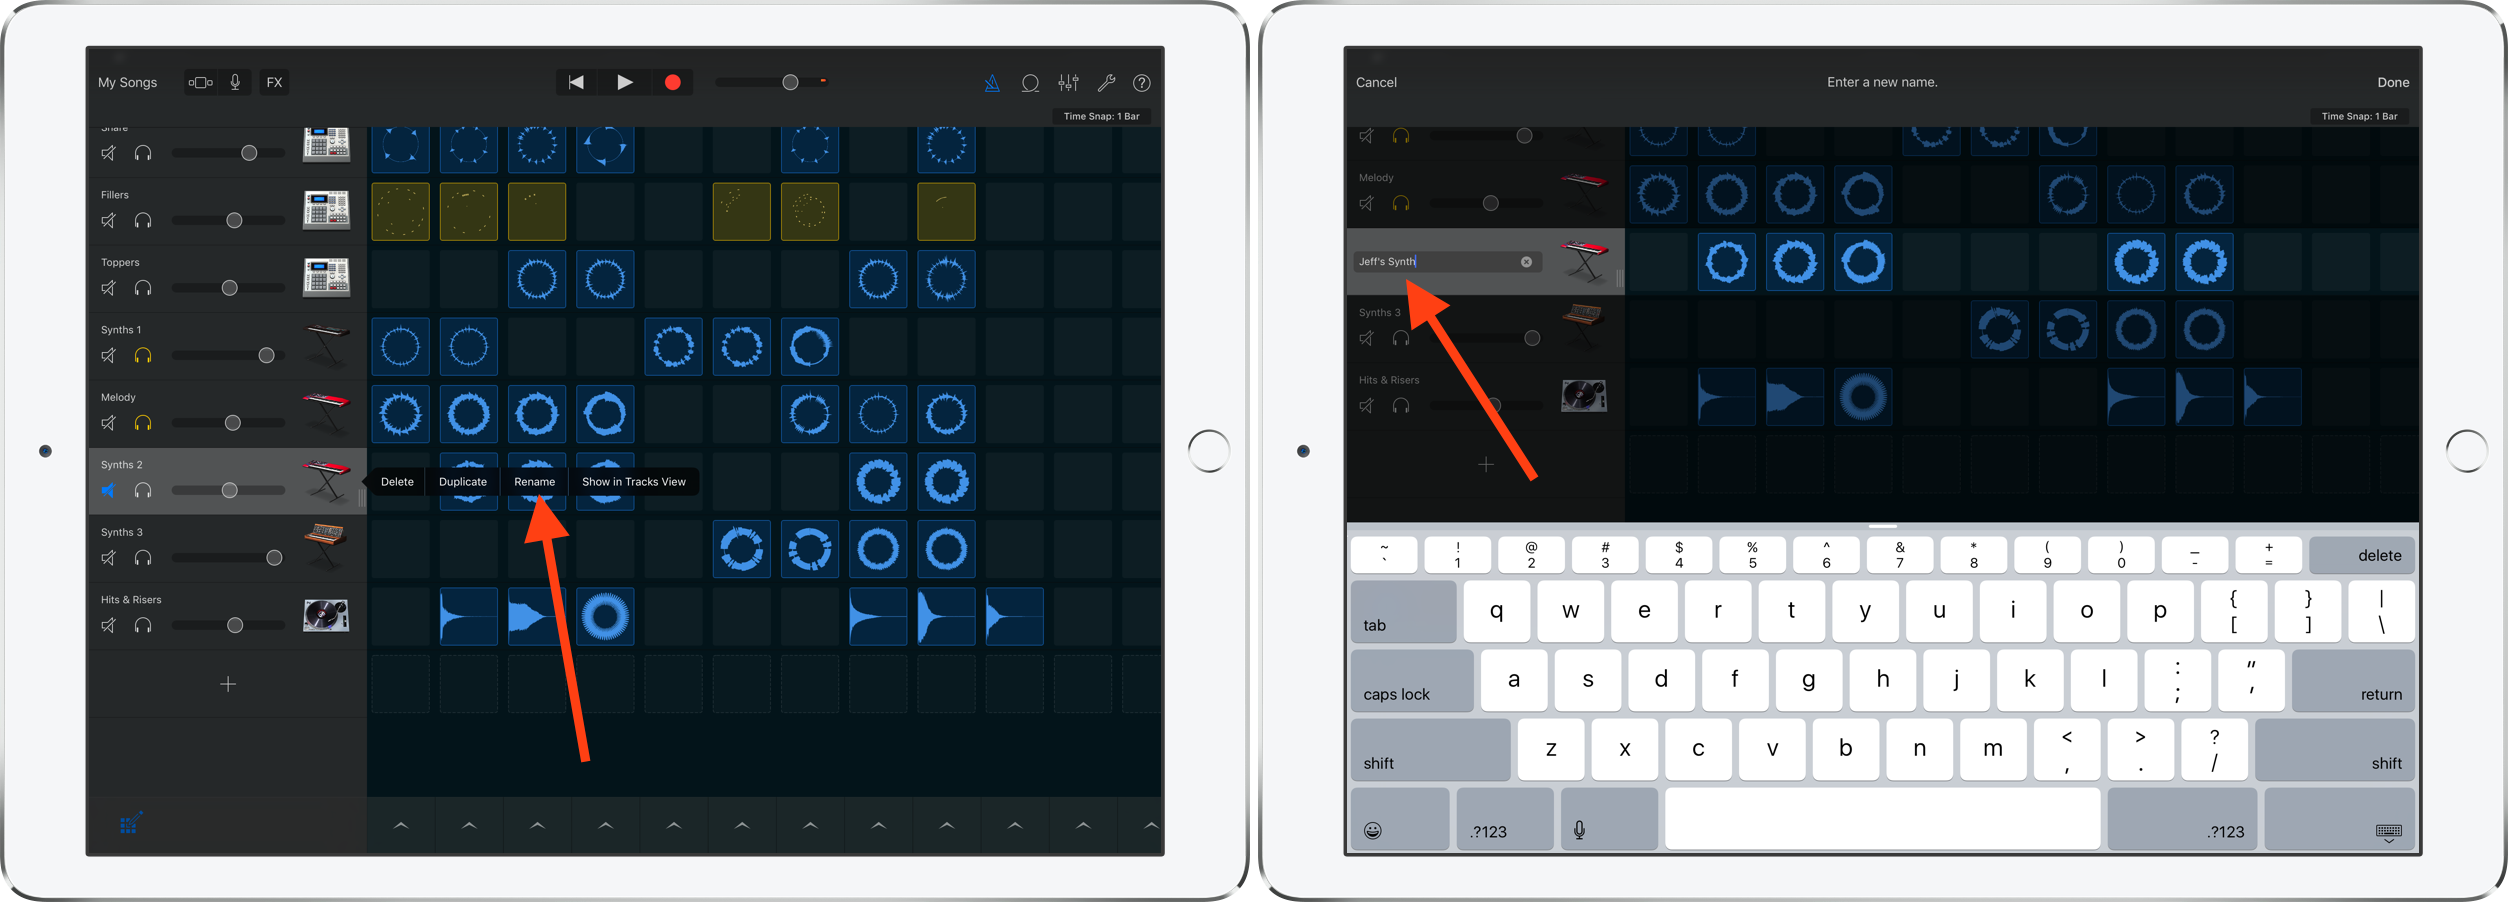 rename columns and instruments GarageBand